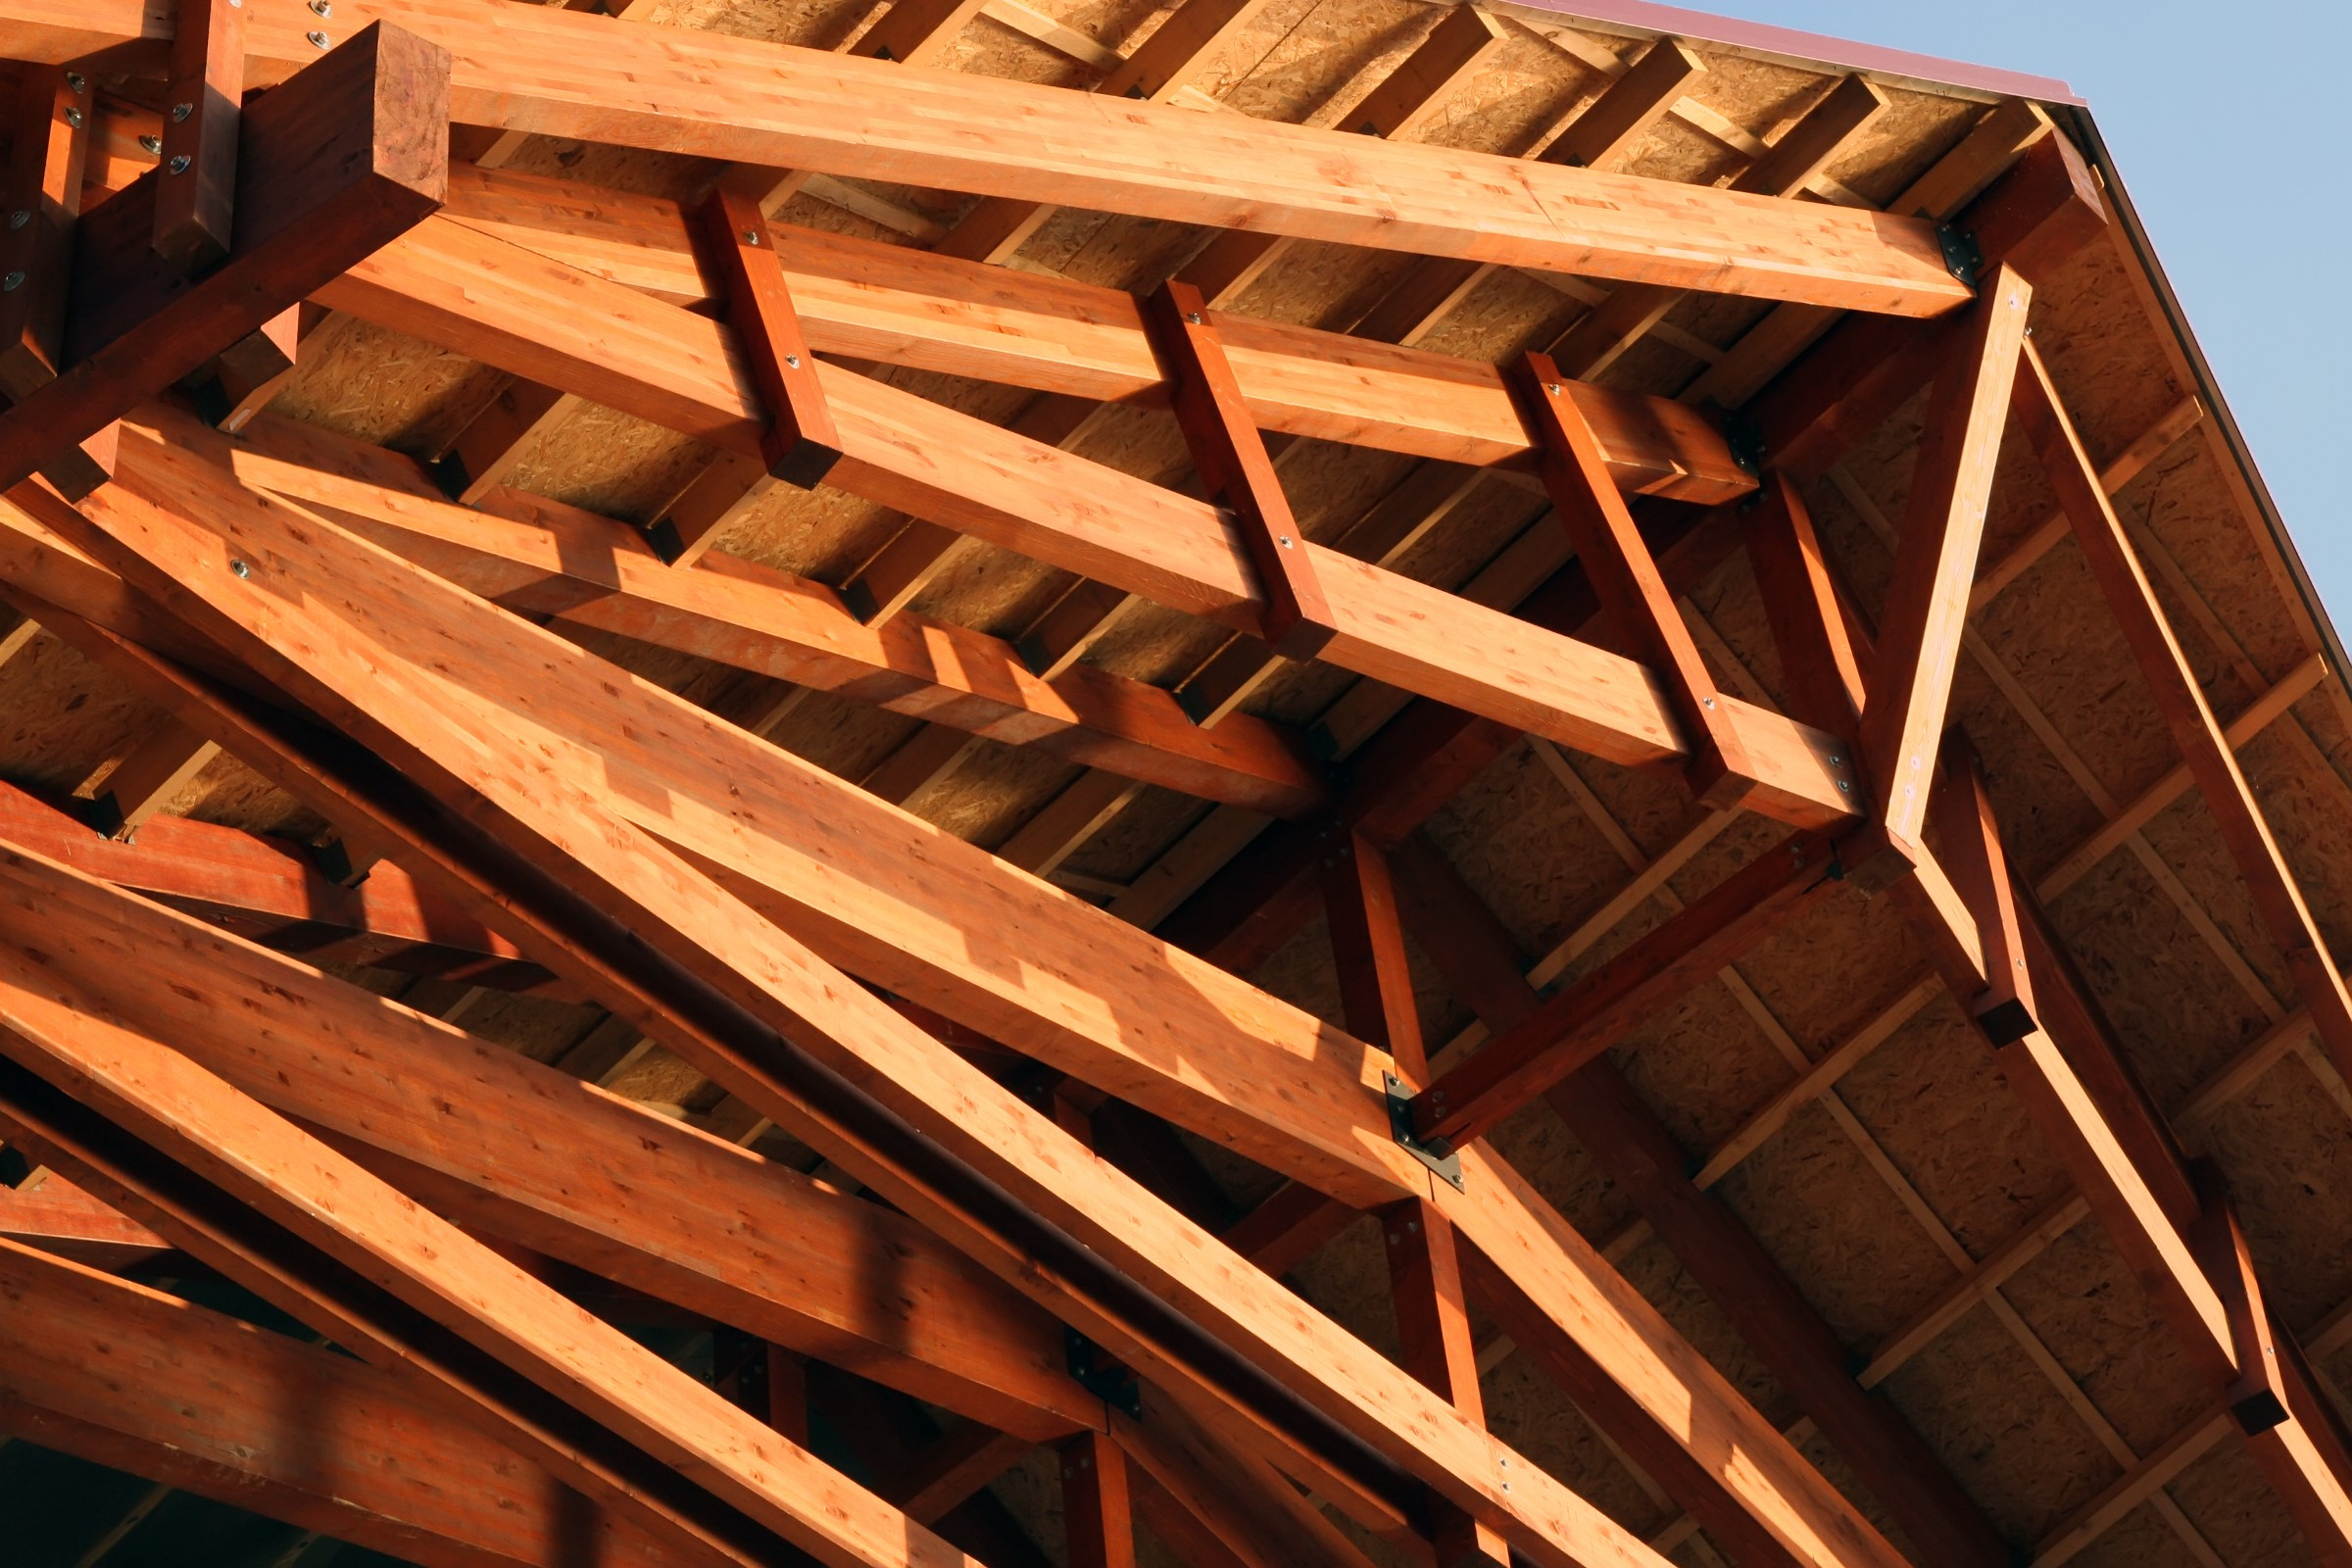 10 roof truss apps to improve your design and plansFinest Roofing Design #12